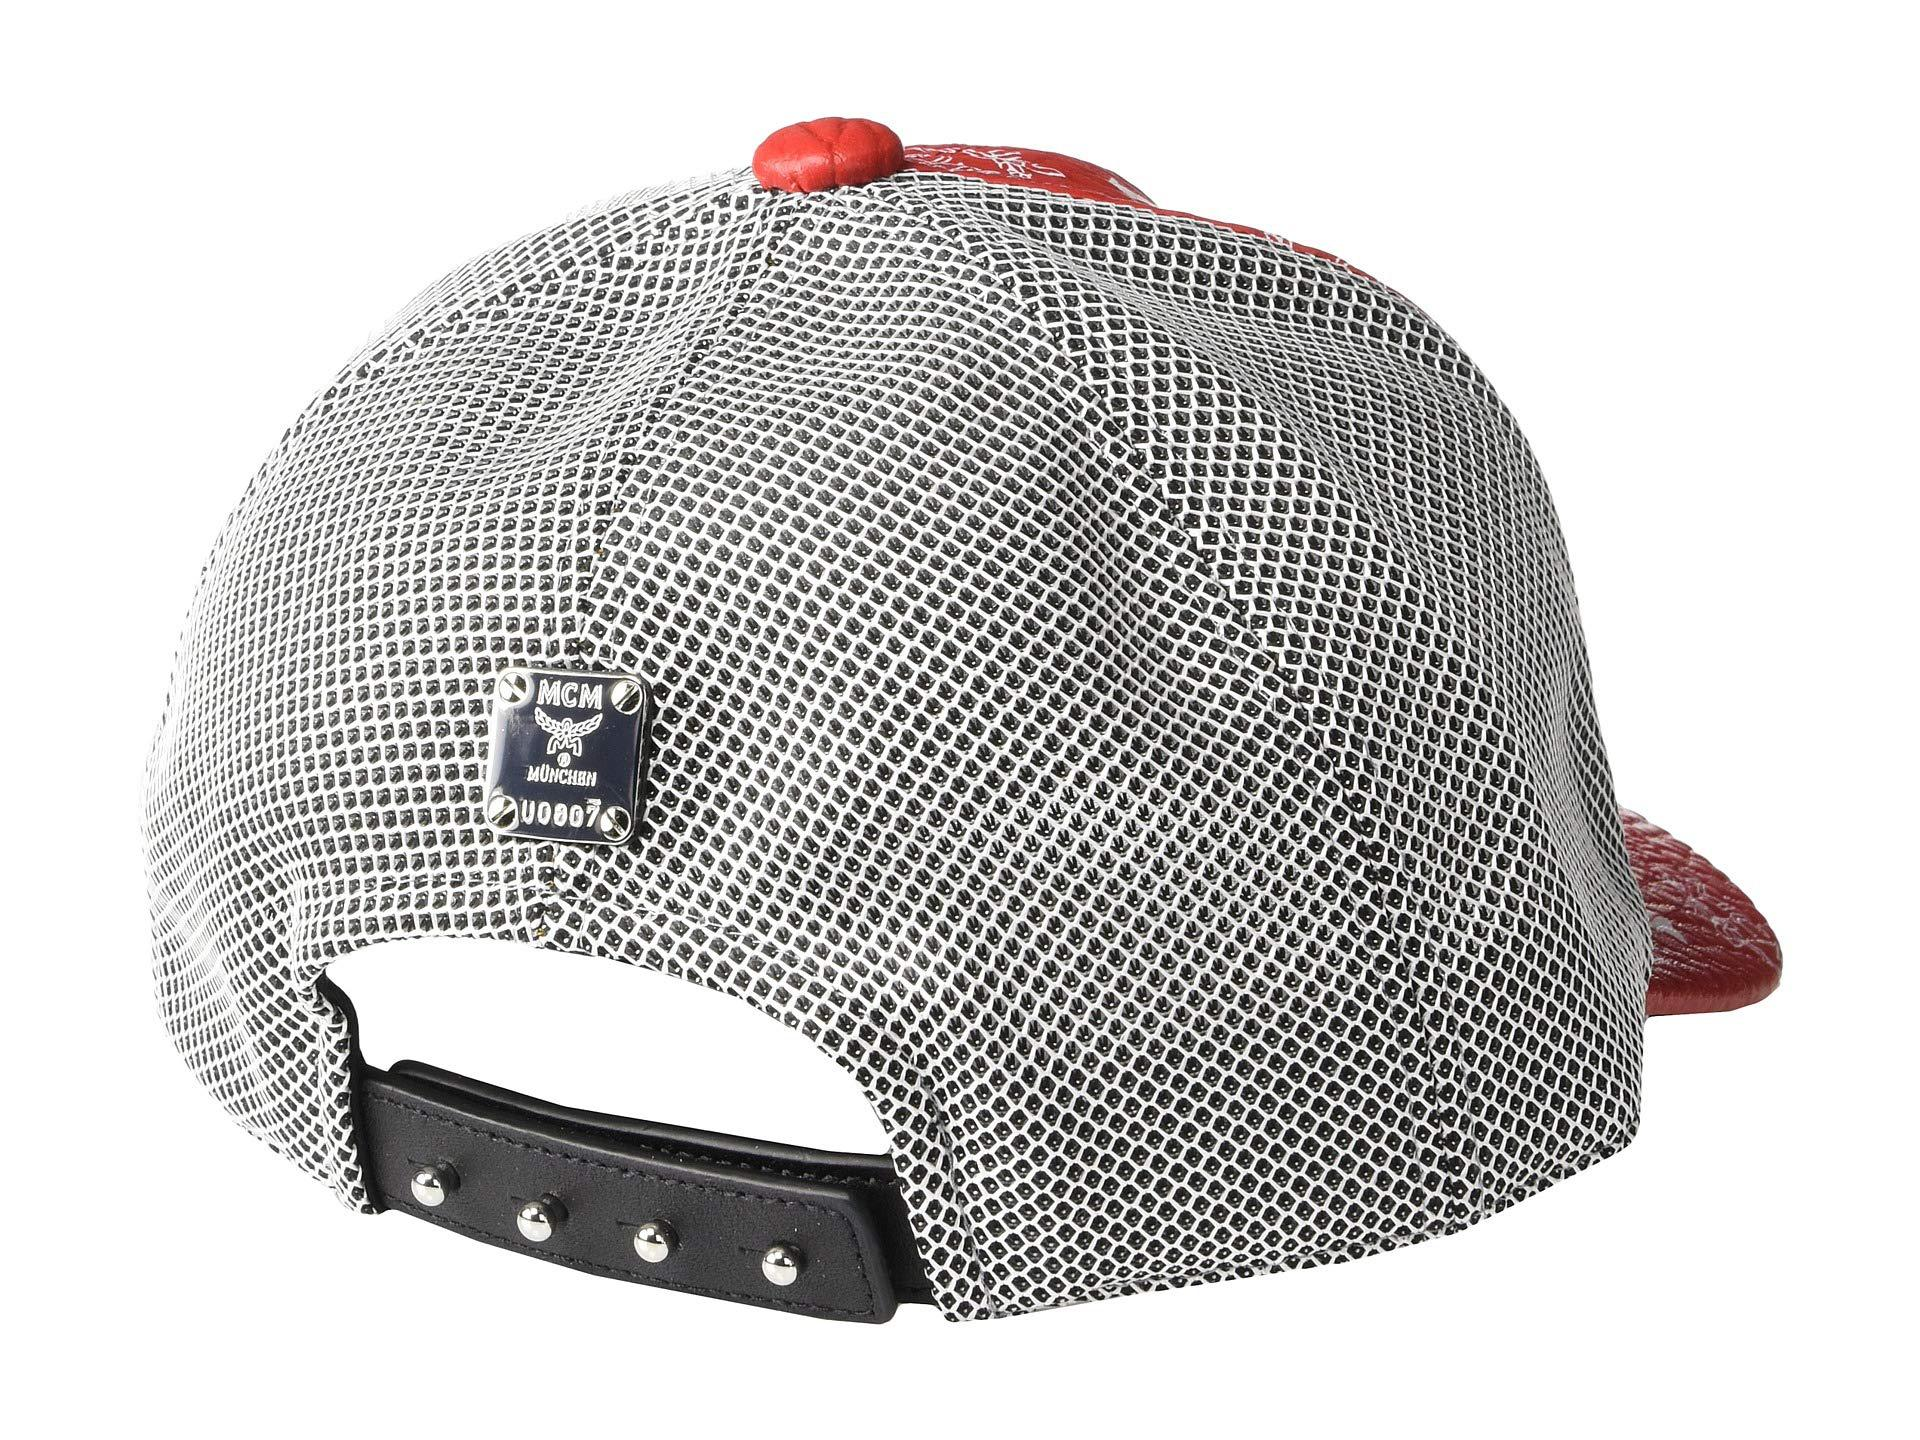 MCM - Classic Mesh Cap In Visetos (white Logo viva Red) Caps for. View  fullscreen 3d86cfb3b3a9